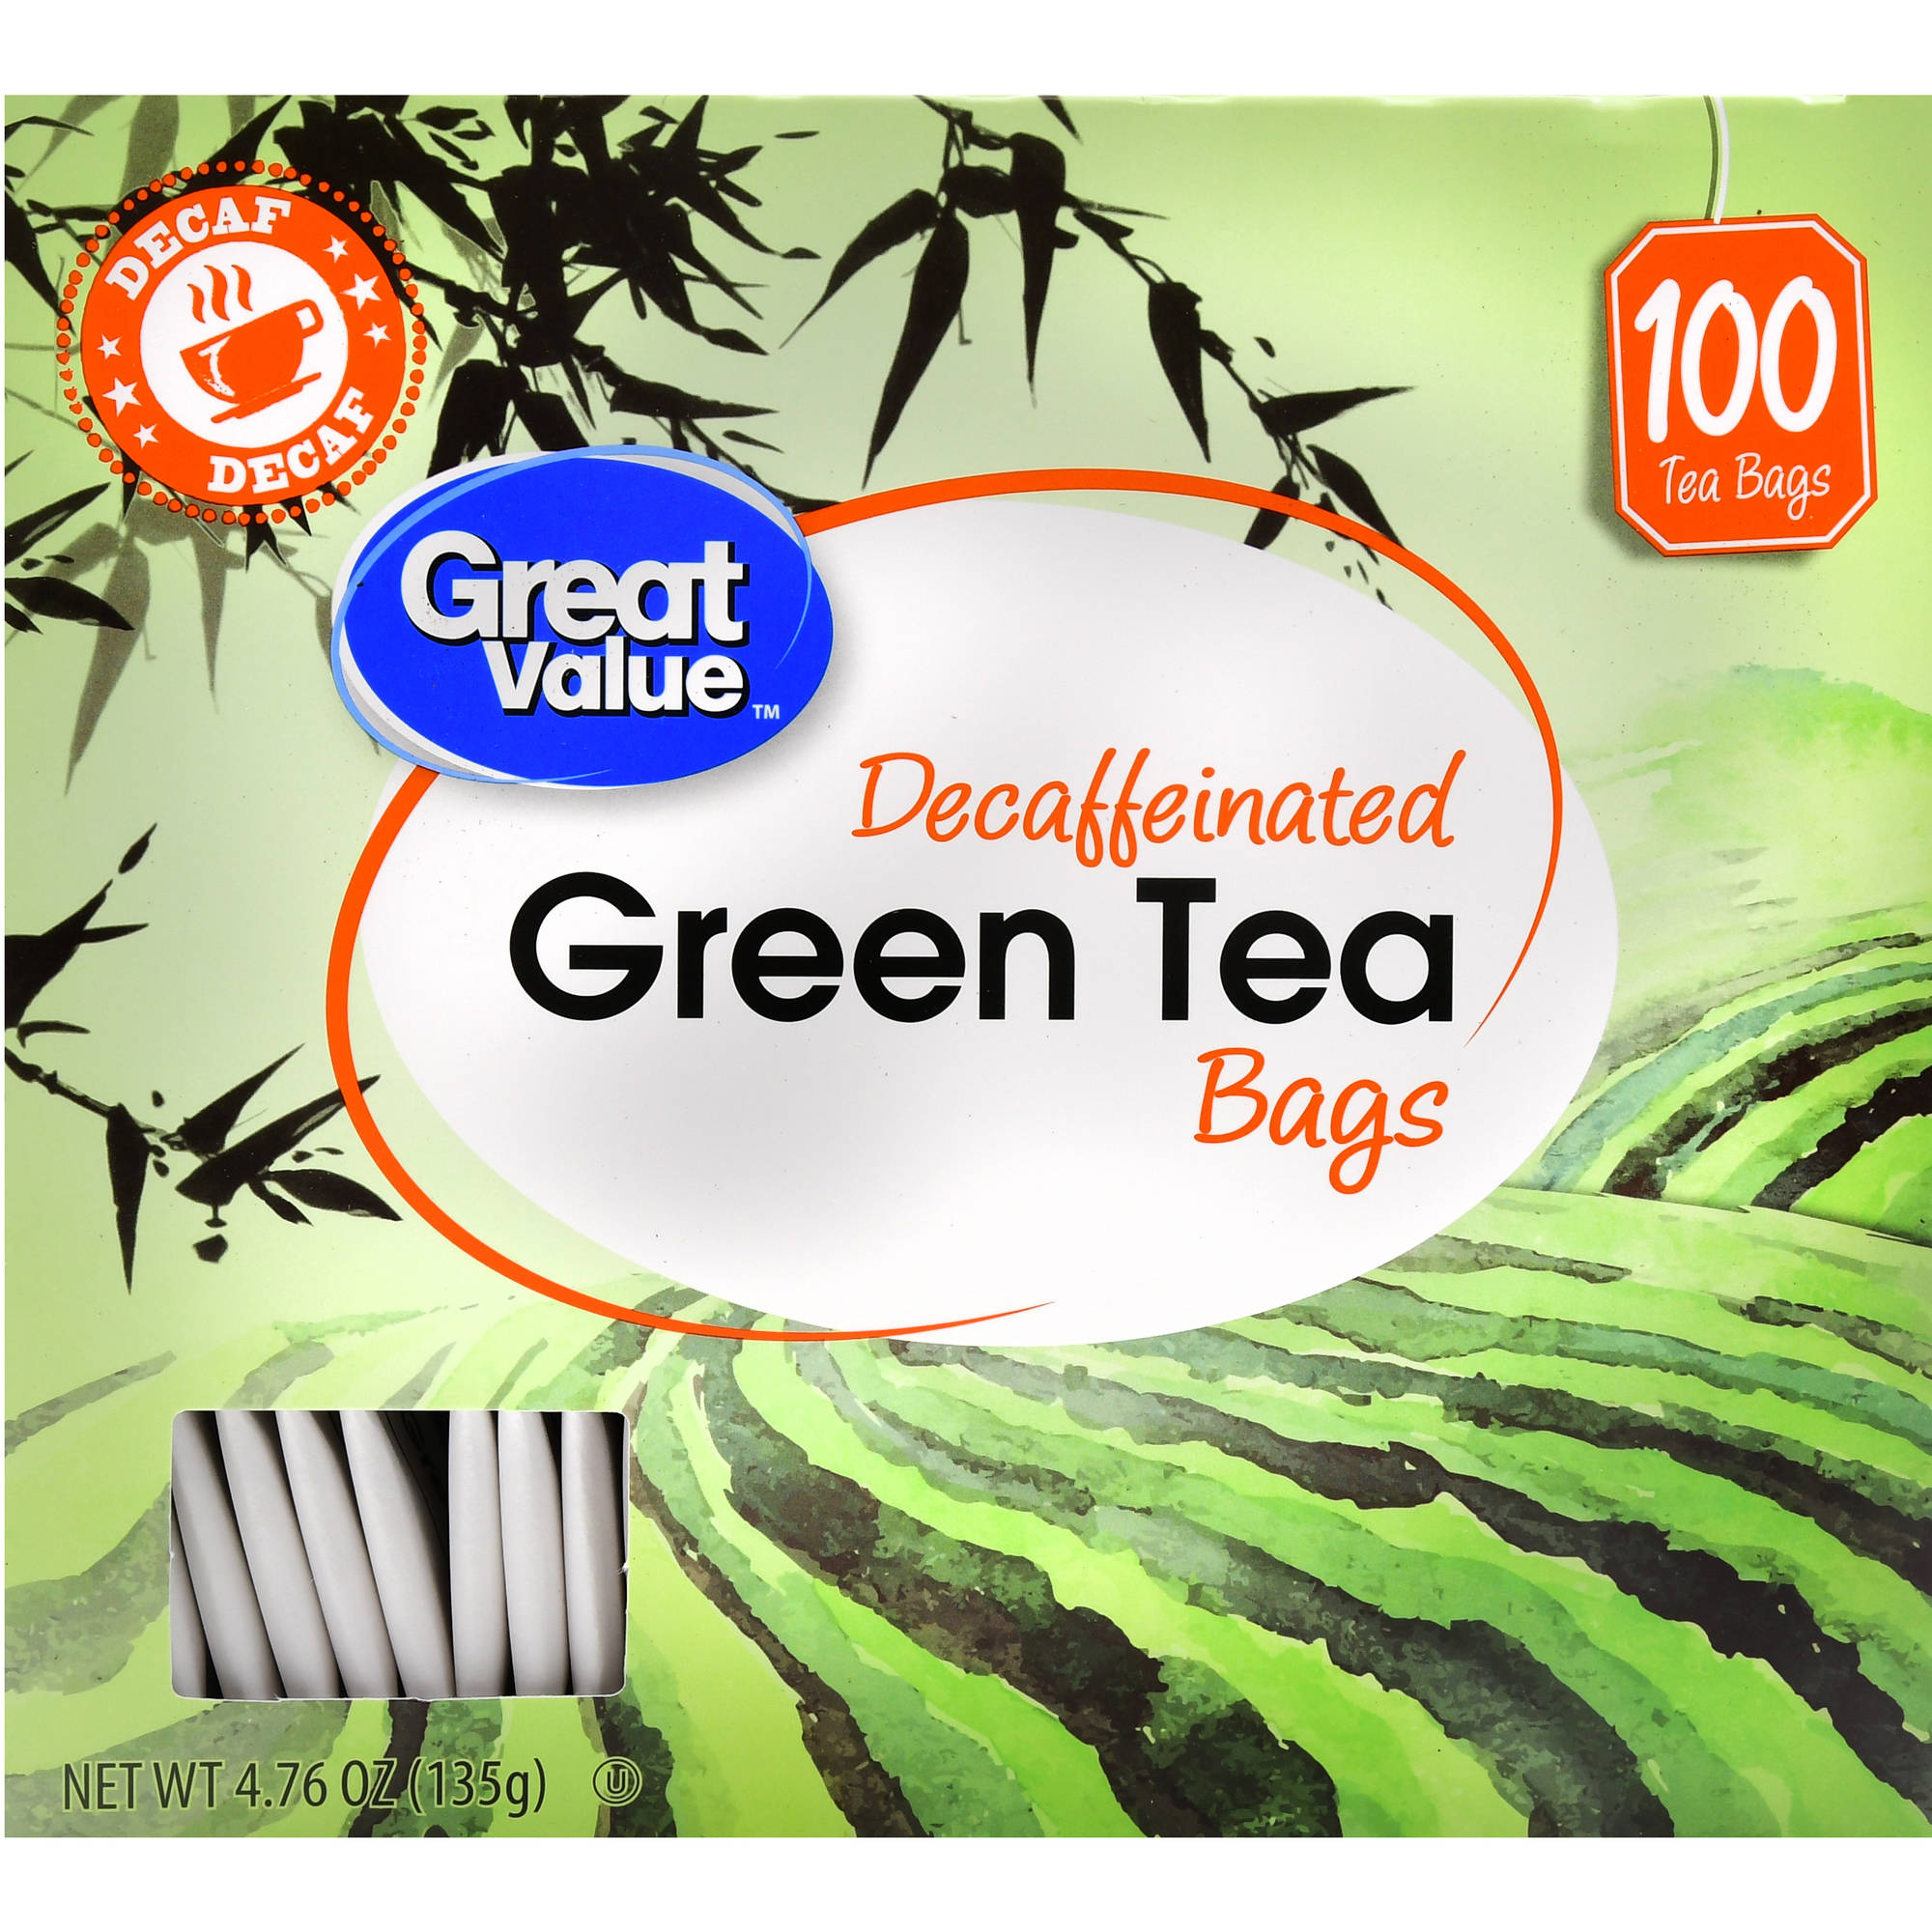 Great Value Decaf Green Tea Bags, 4.76 oz, 100 Count